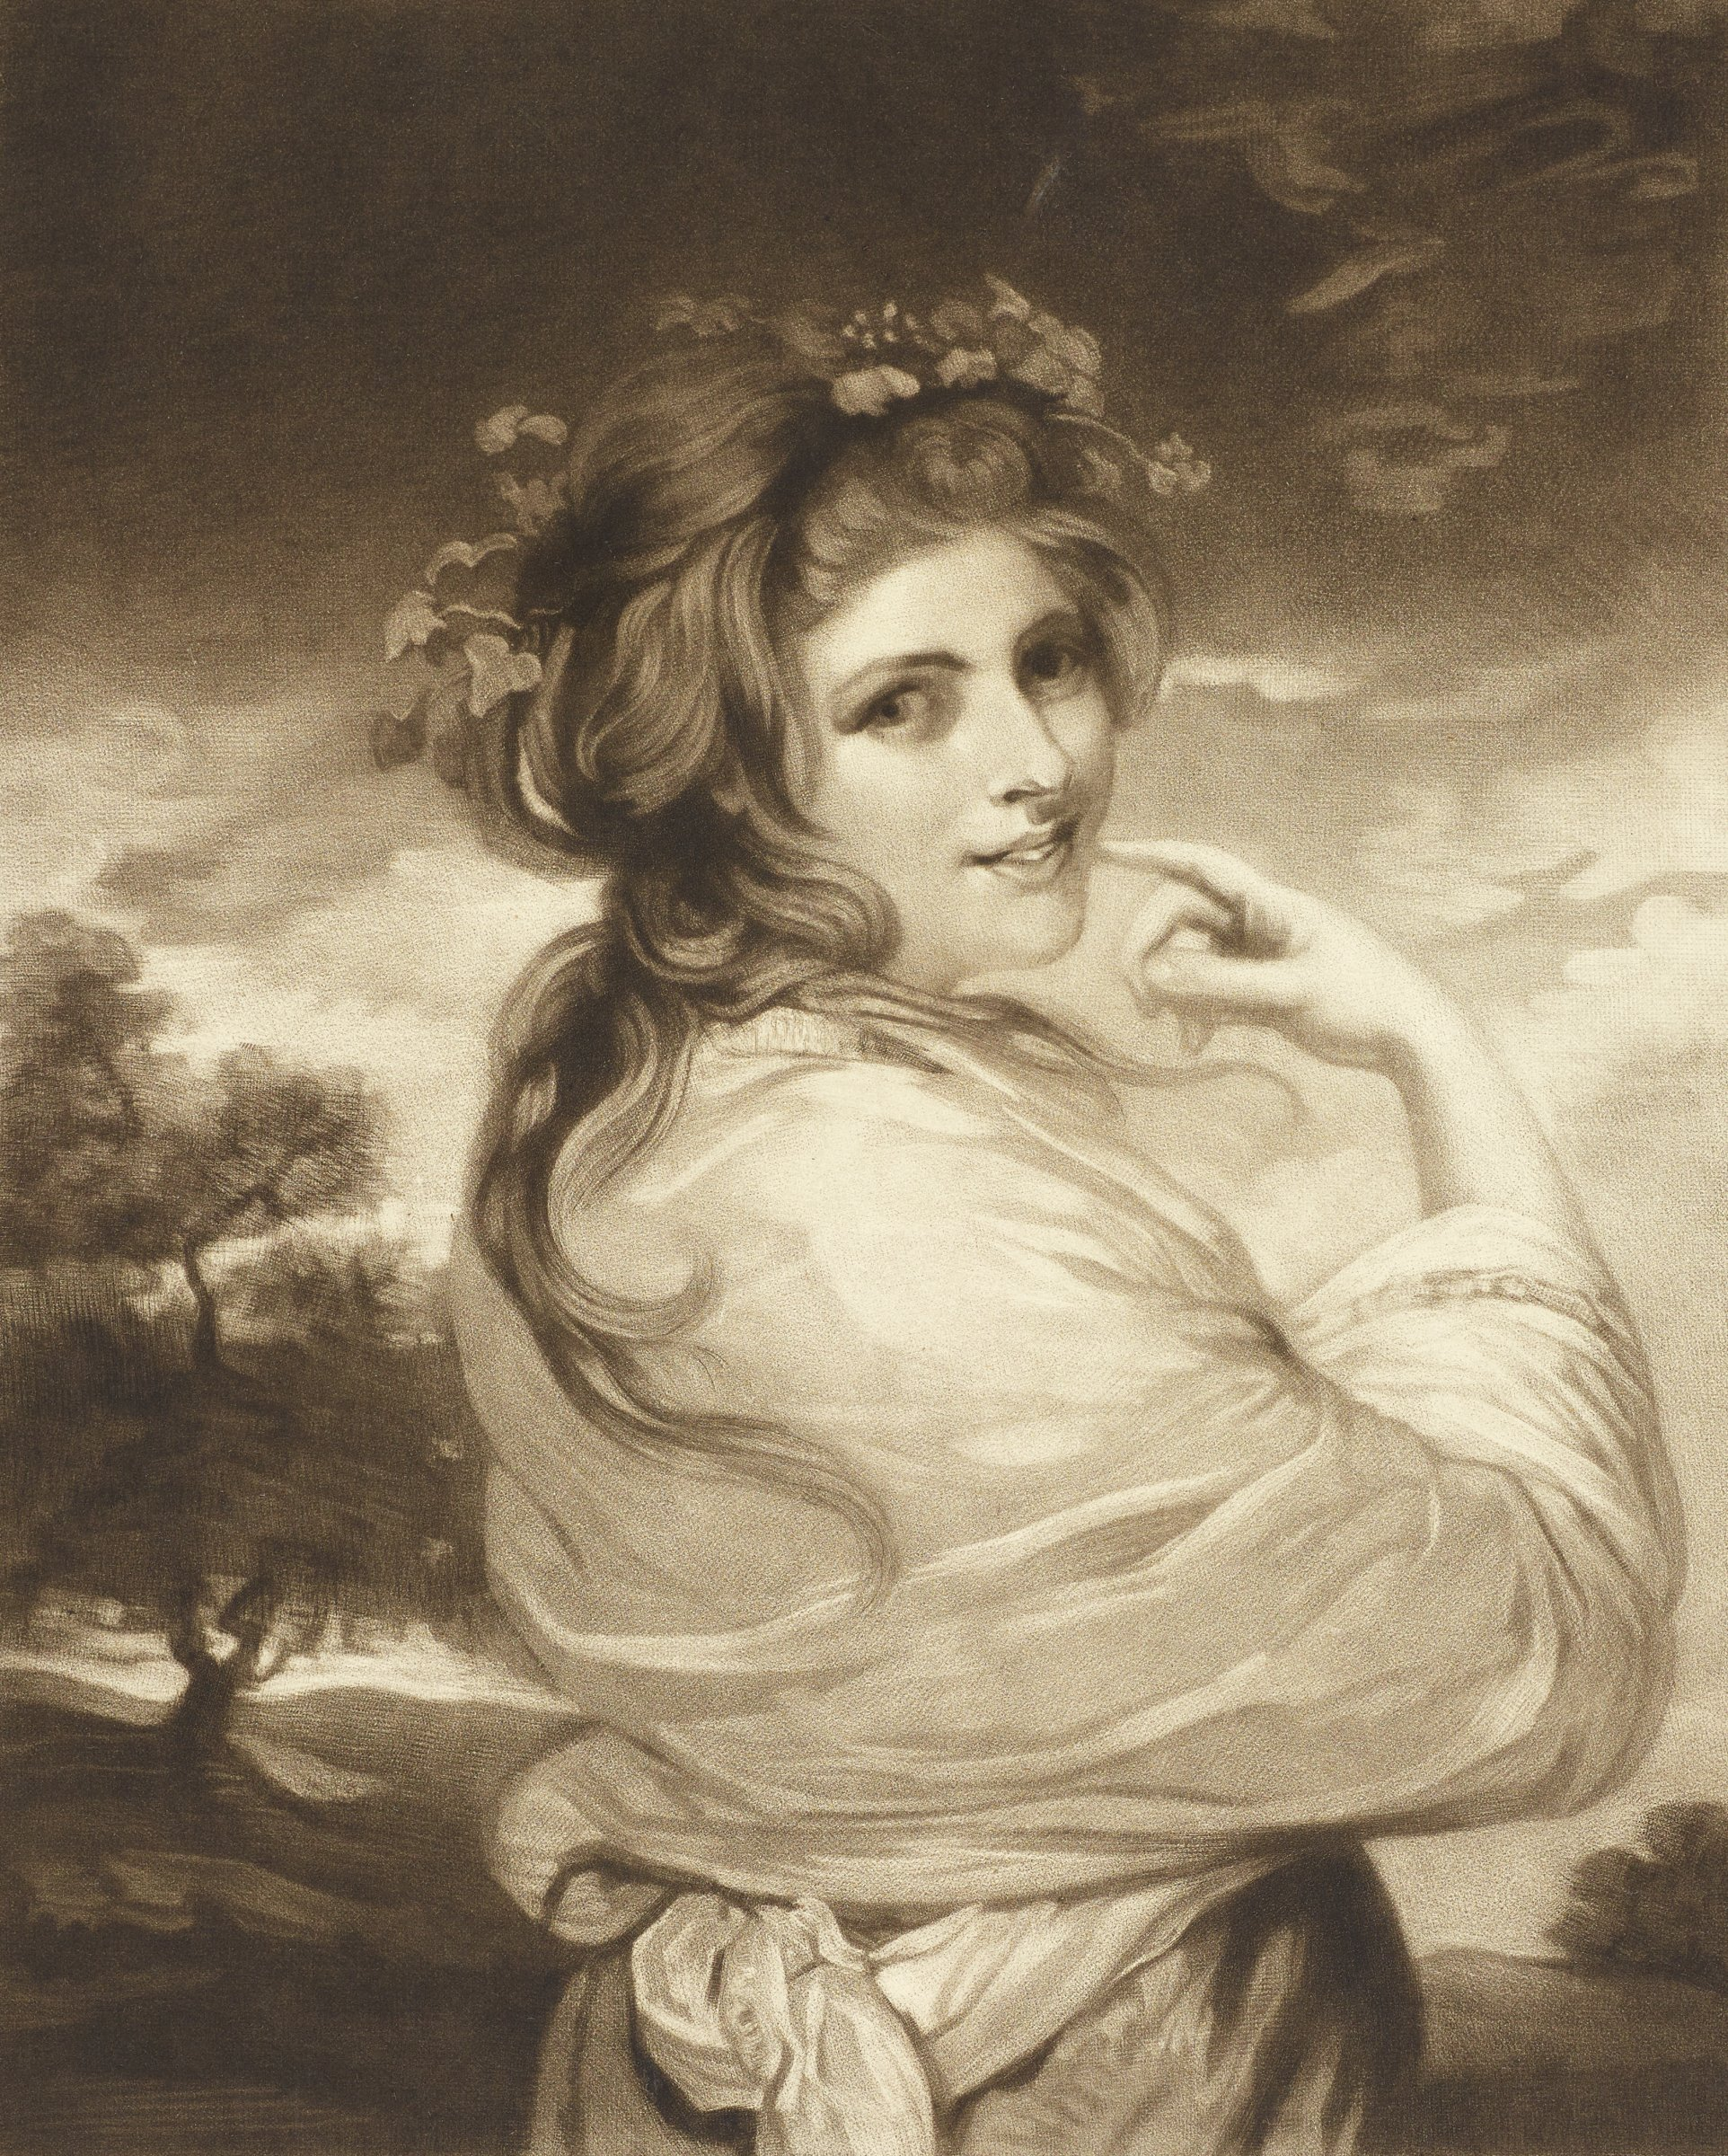 Portrait of Emma Hart Hamilton, half-length, directed away from viewer but head turned to look over her right shoulder, with loose hair topped by a grape vine wreath, a shawl over her shoulders, right hand gesturing toward her face; after painted portrait by Reynolds.